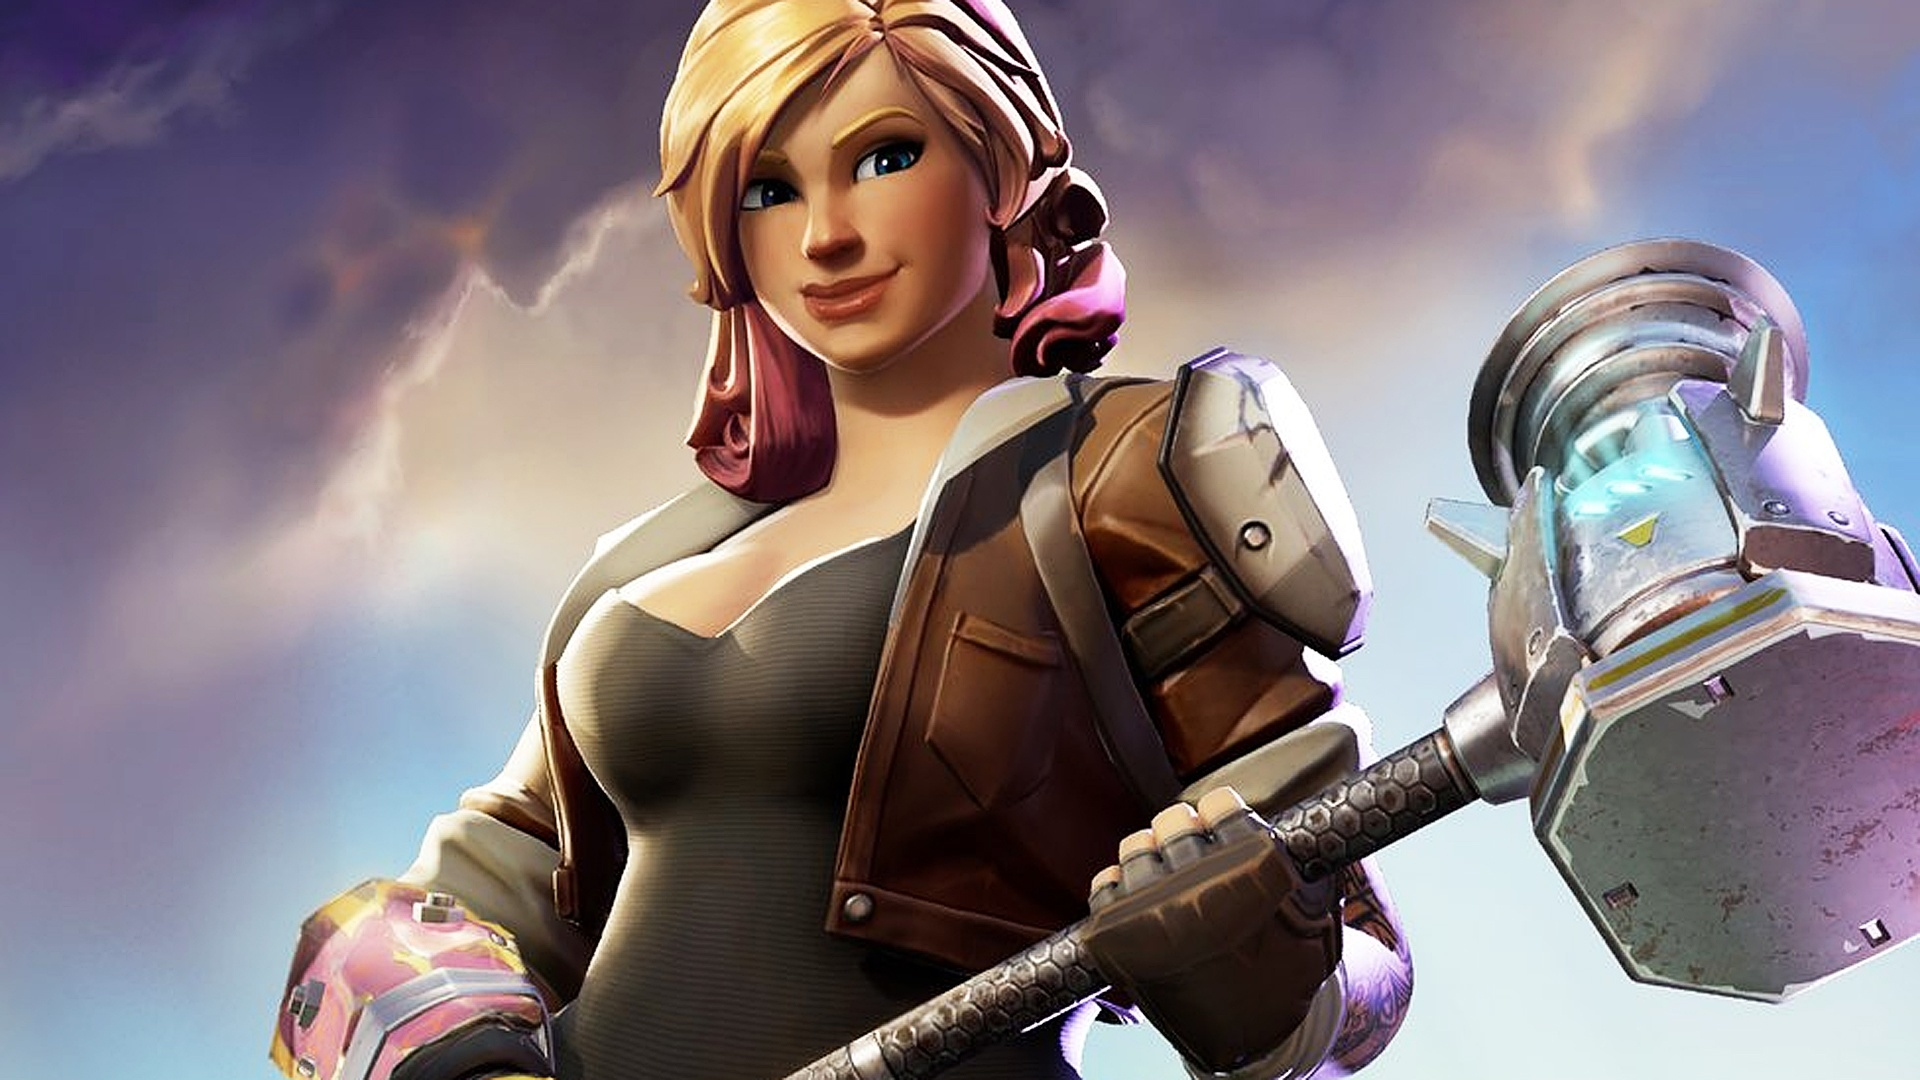 Pornhub: Fortnite searches are up 834% - Next Gen Technology